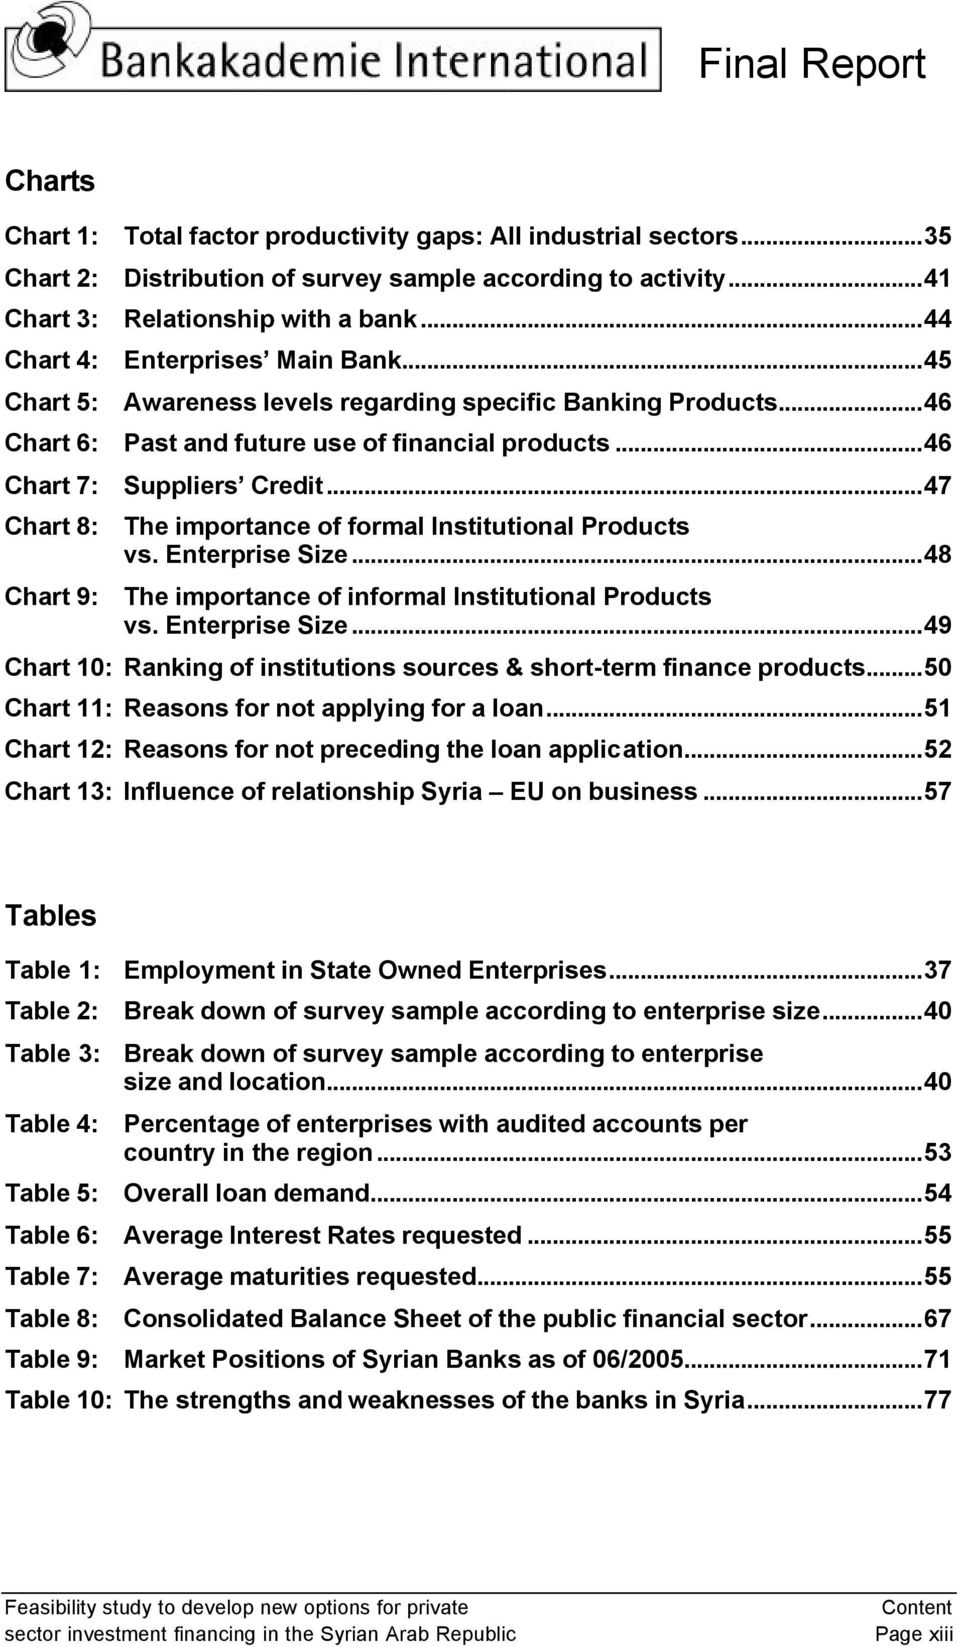 ..47 The importance of formal Institutional Products vs. Enterprise Size...48 The importance of informal Institutional Products vs. Enterprise Size...49 Chart 10: Ranking of institutions sources & short-term finance products.